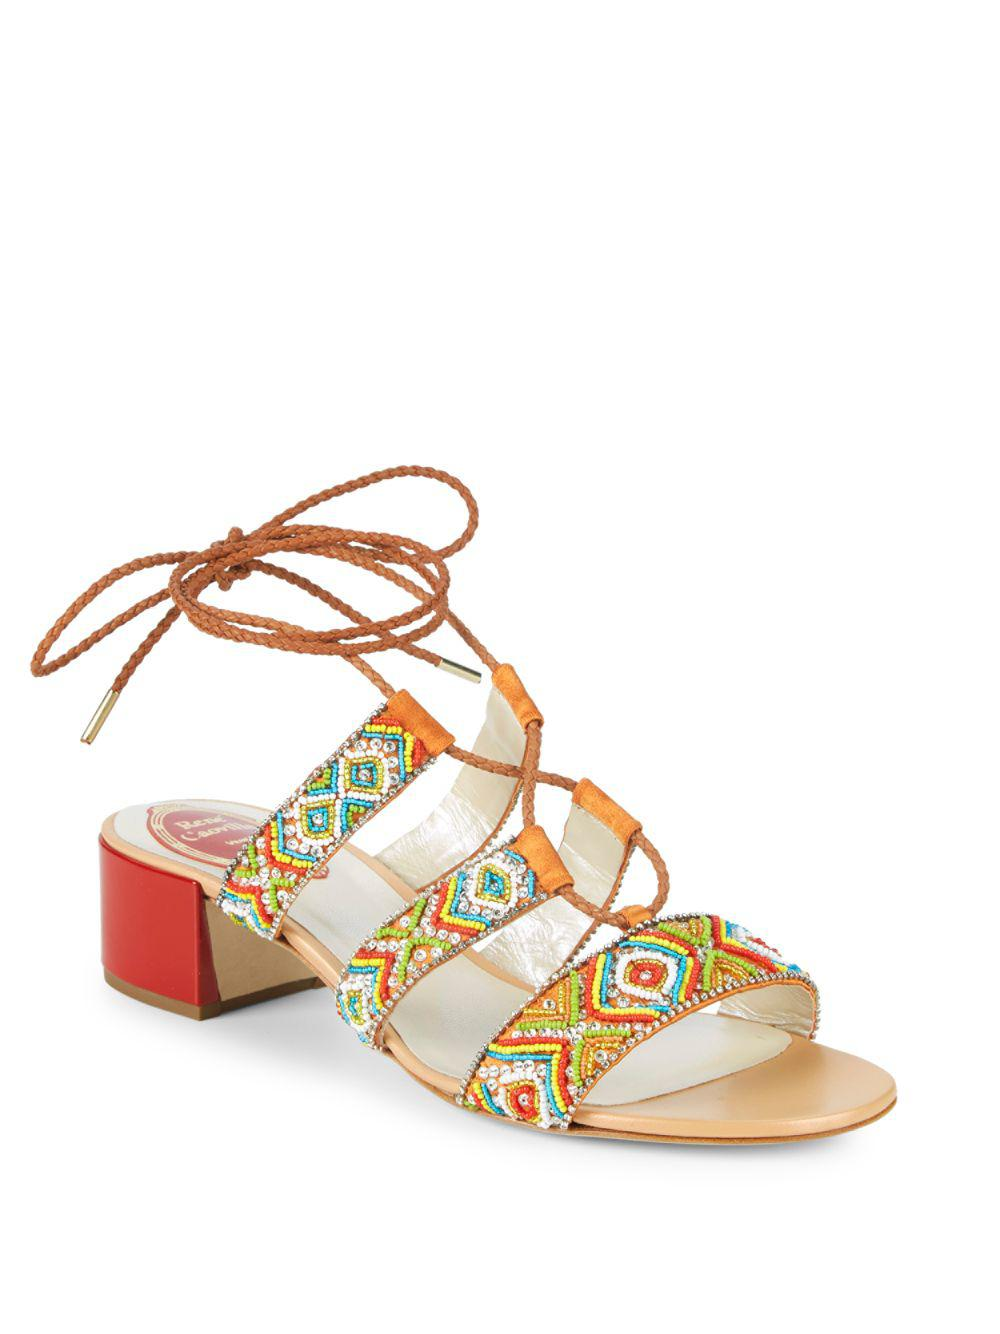 a1f1a3bb2f7 Rene Caovilla. Women s Embellished Ankle-strap Leather Sandals